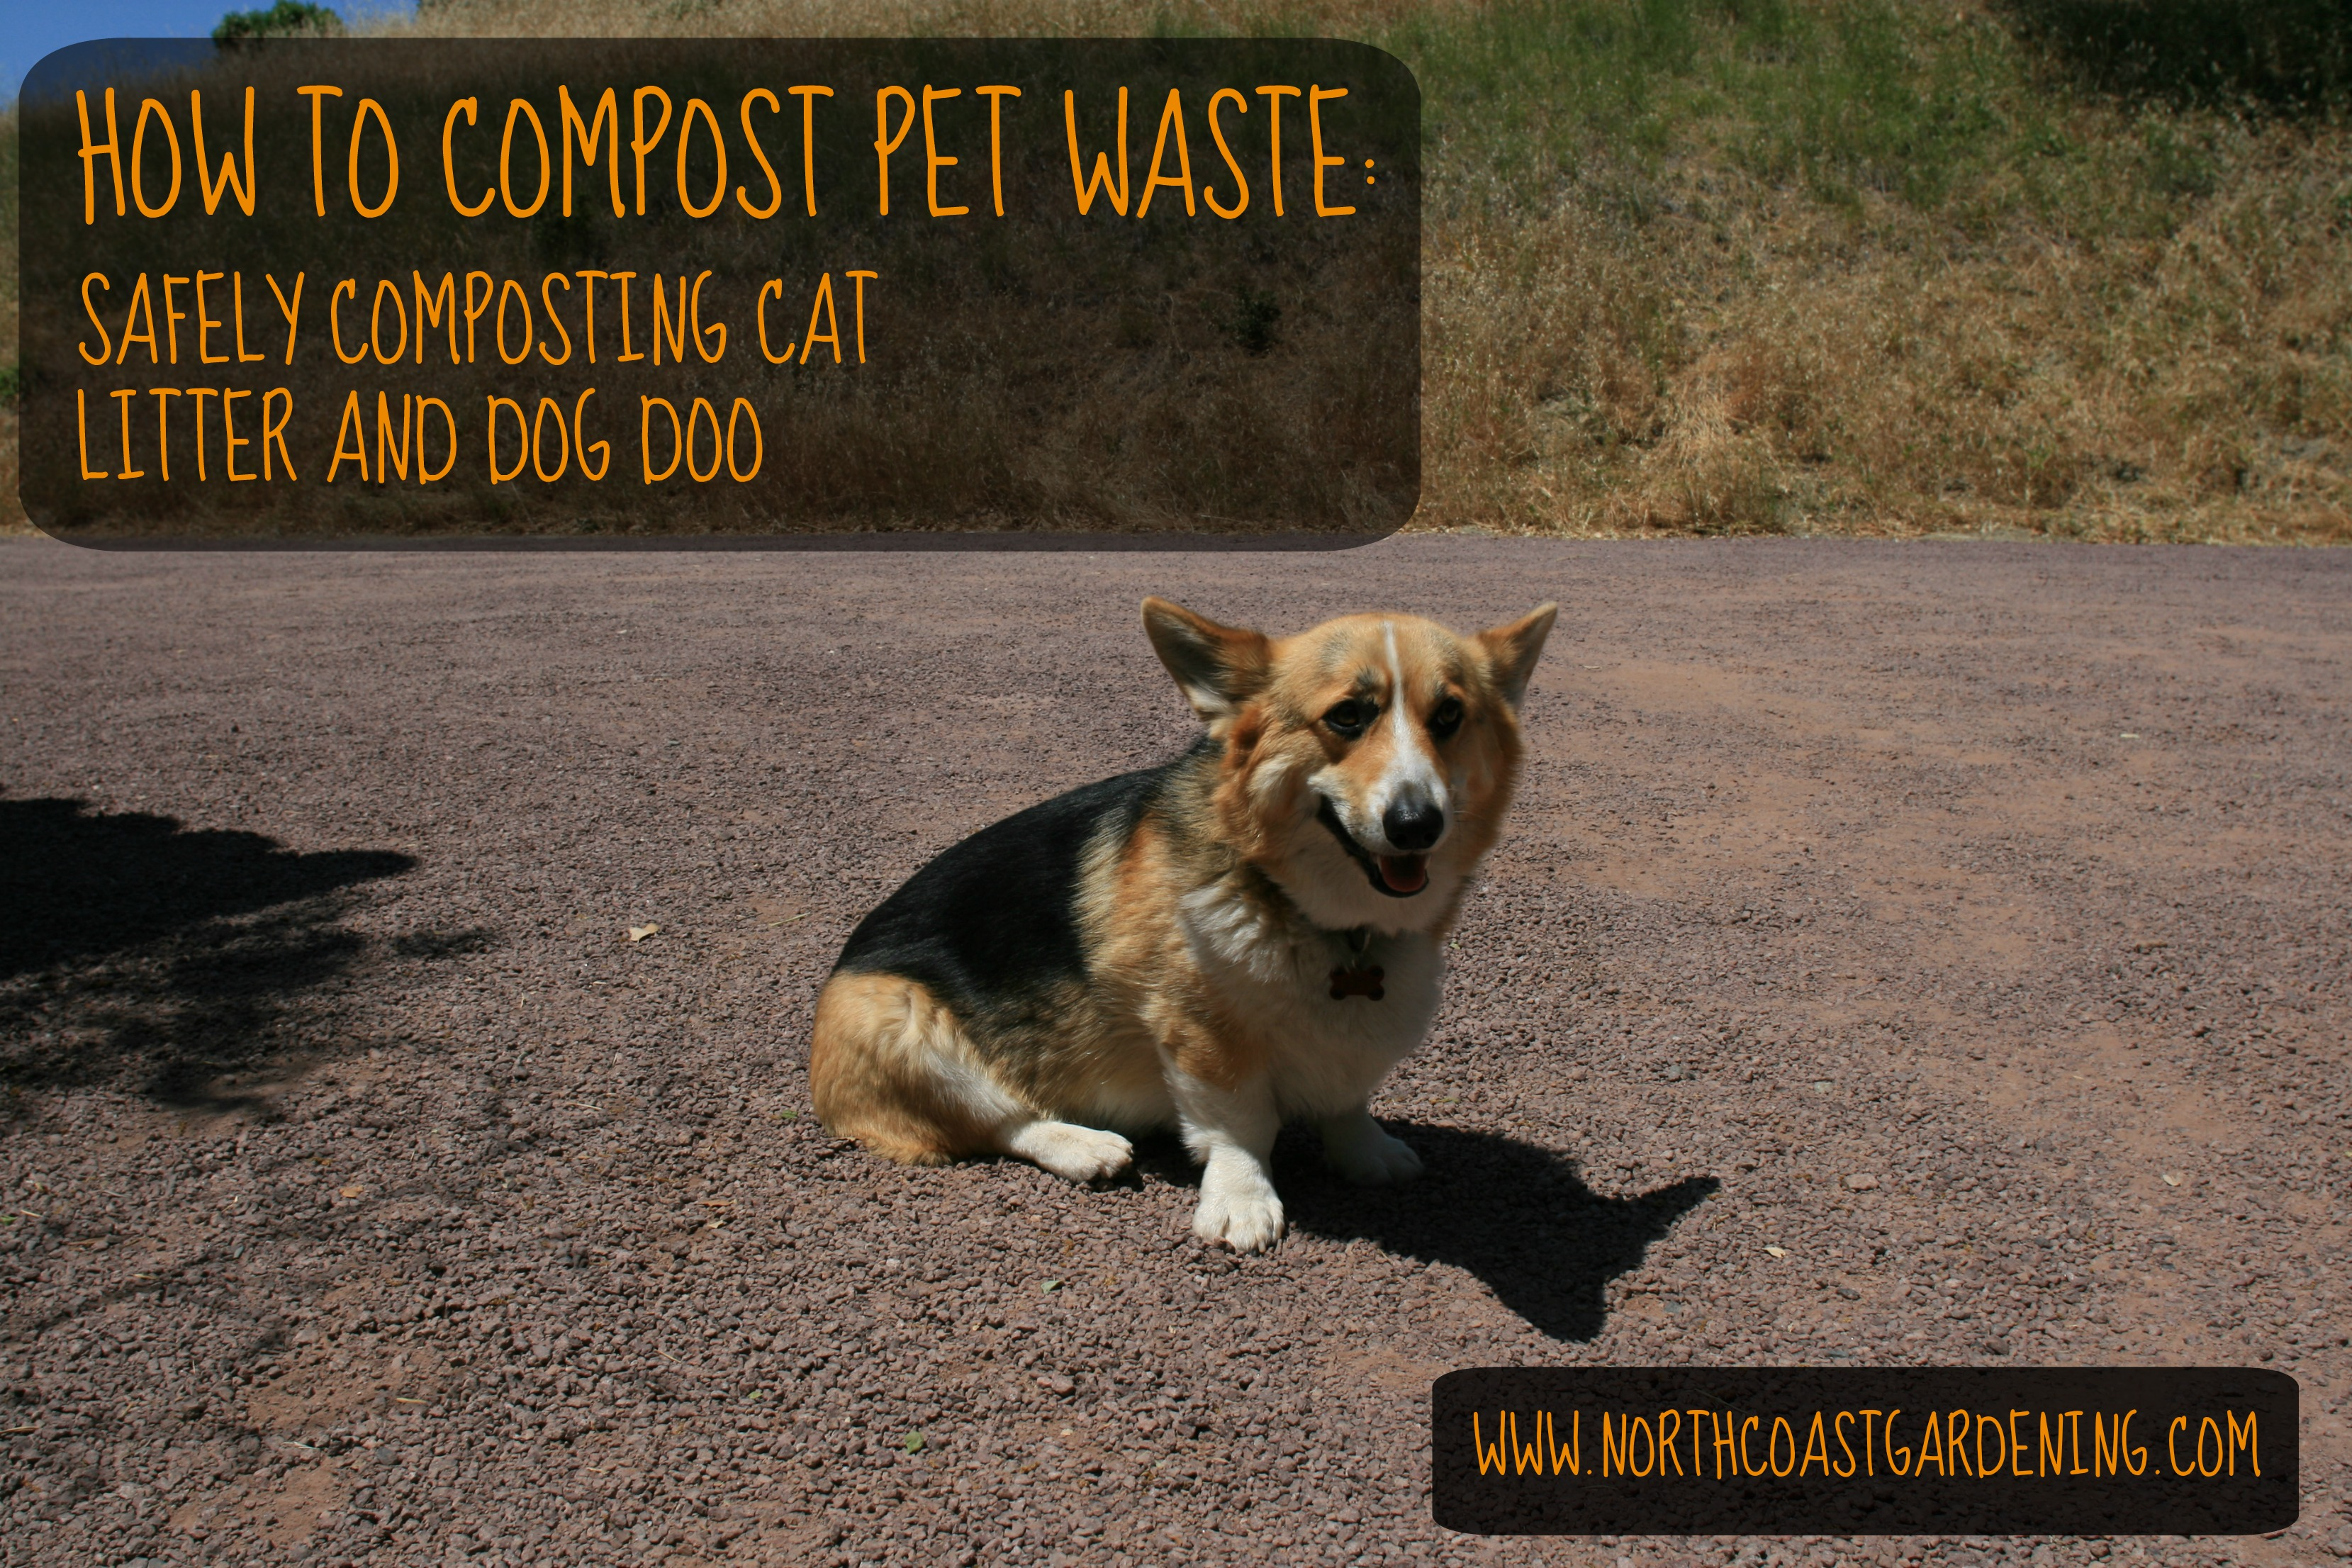 Can Cat Poop Be Composted